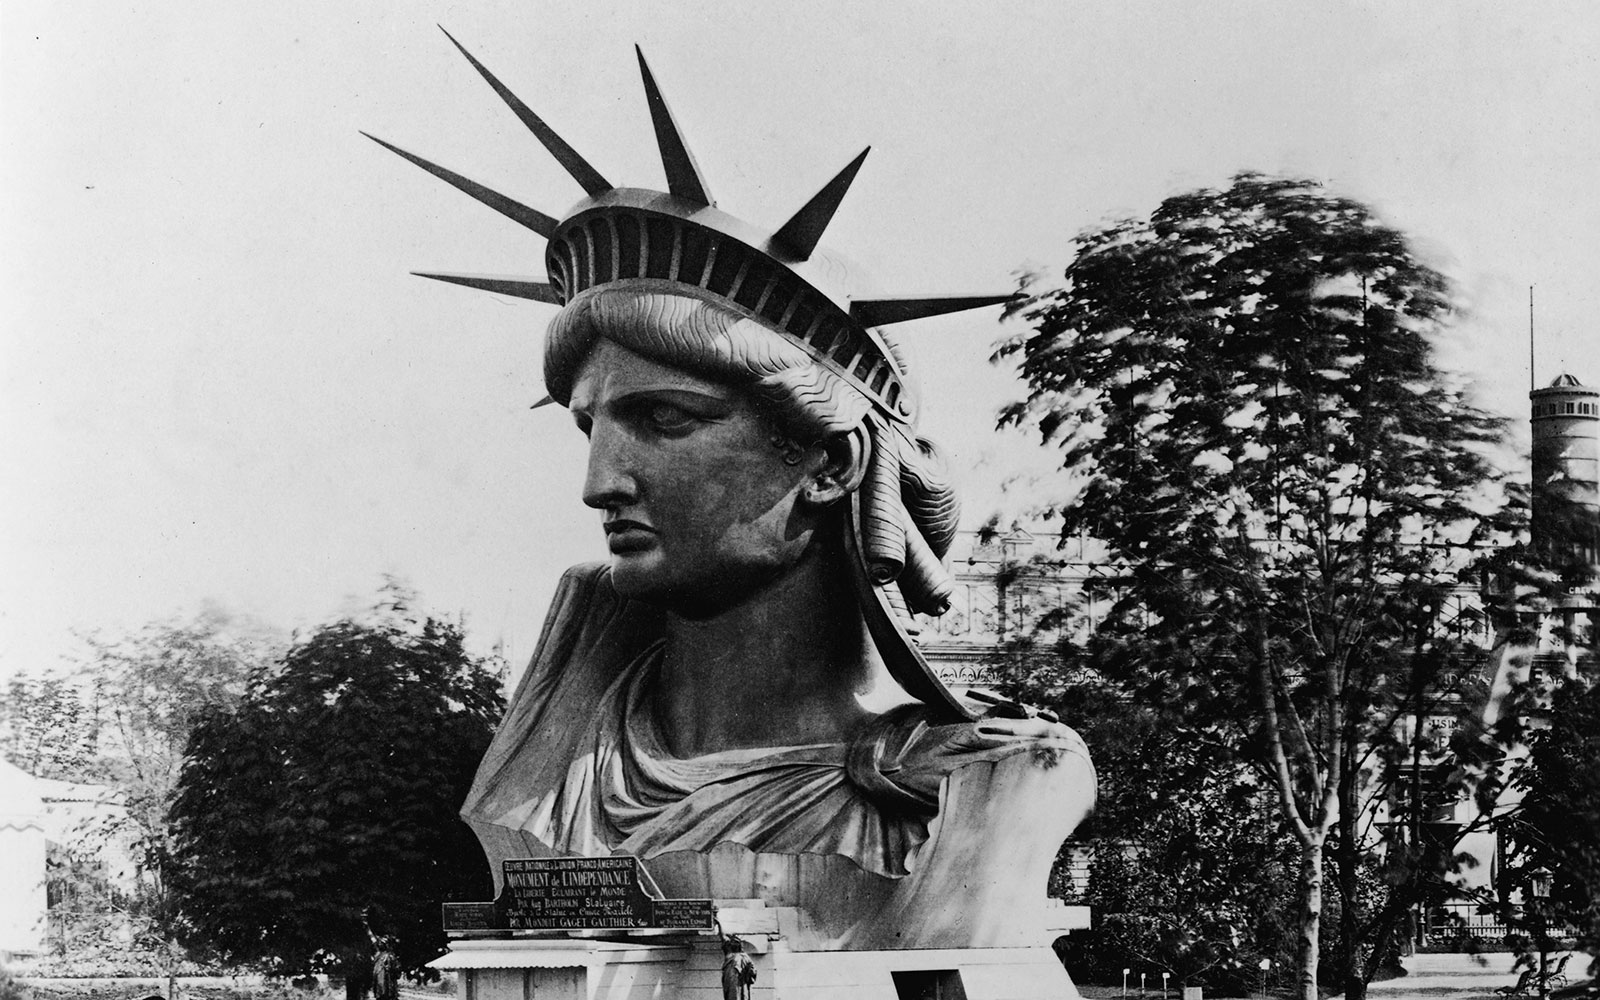 Photos: Statue of Liberty Construction in the 1800s